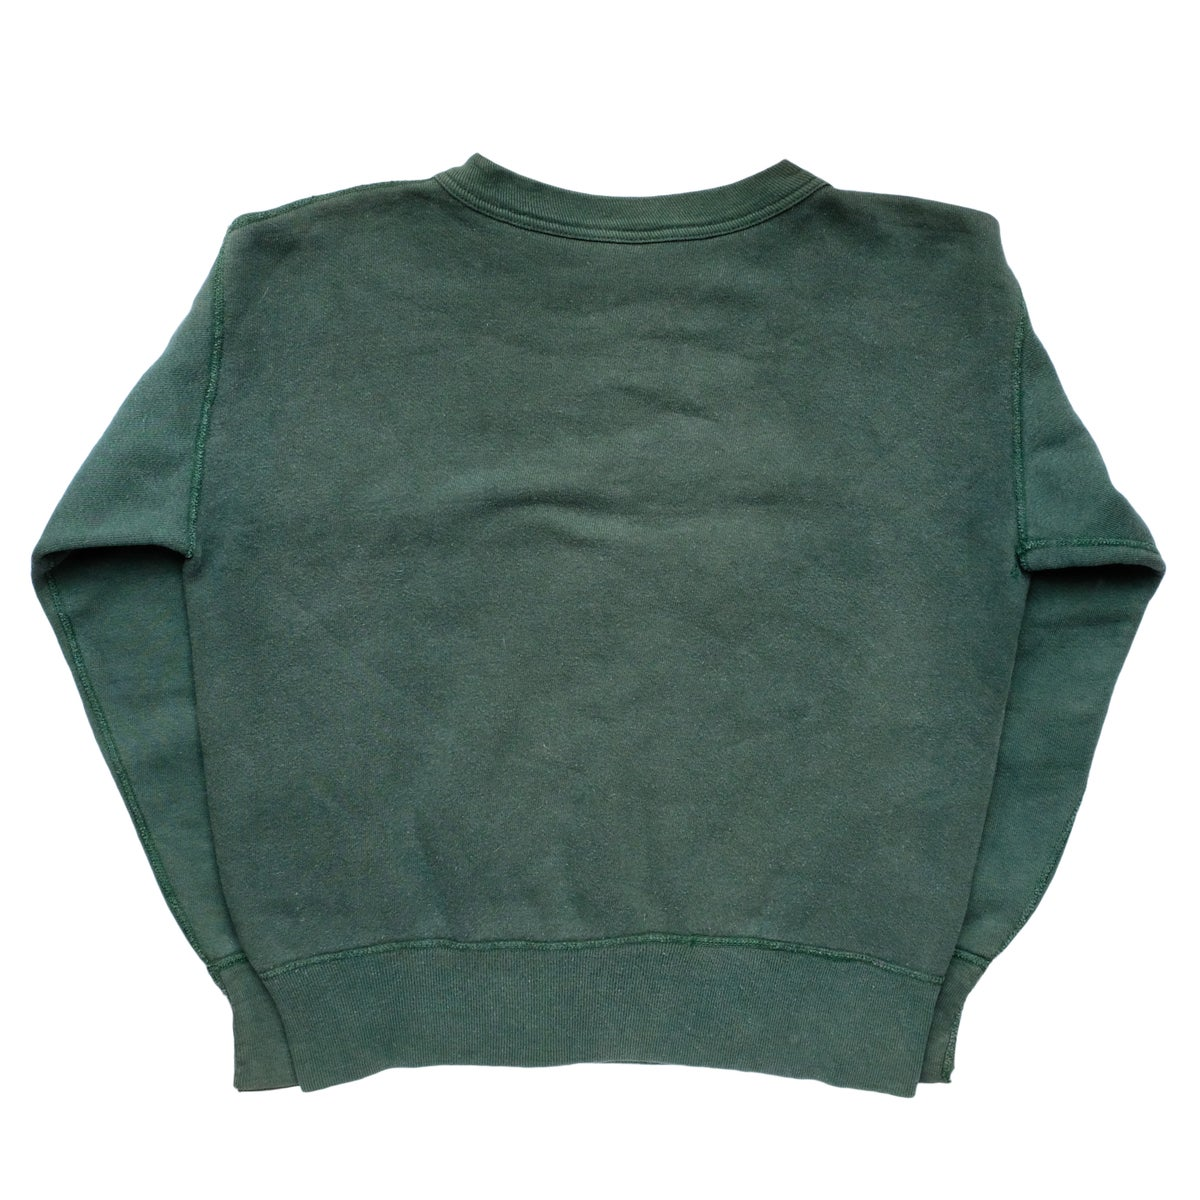 Image of Vintage 60s Russell Southern Green Sweatshirt